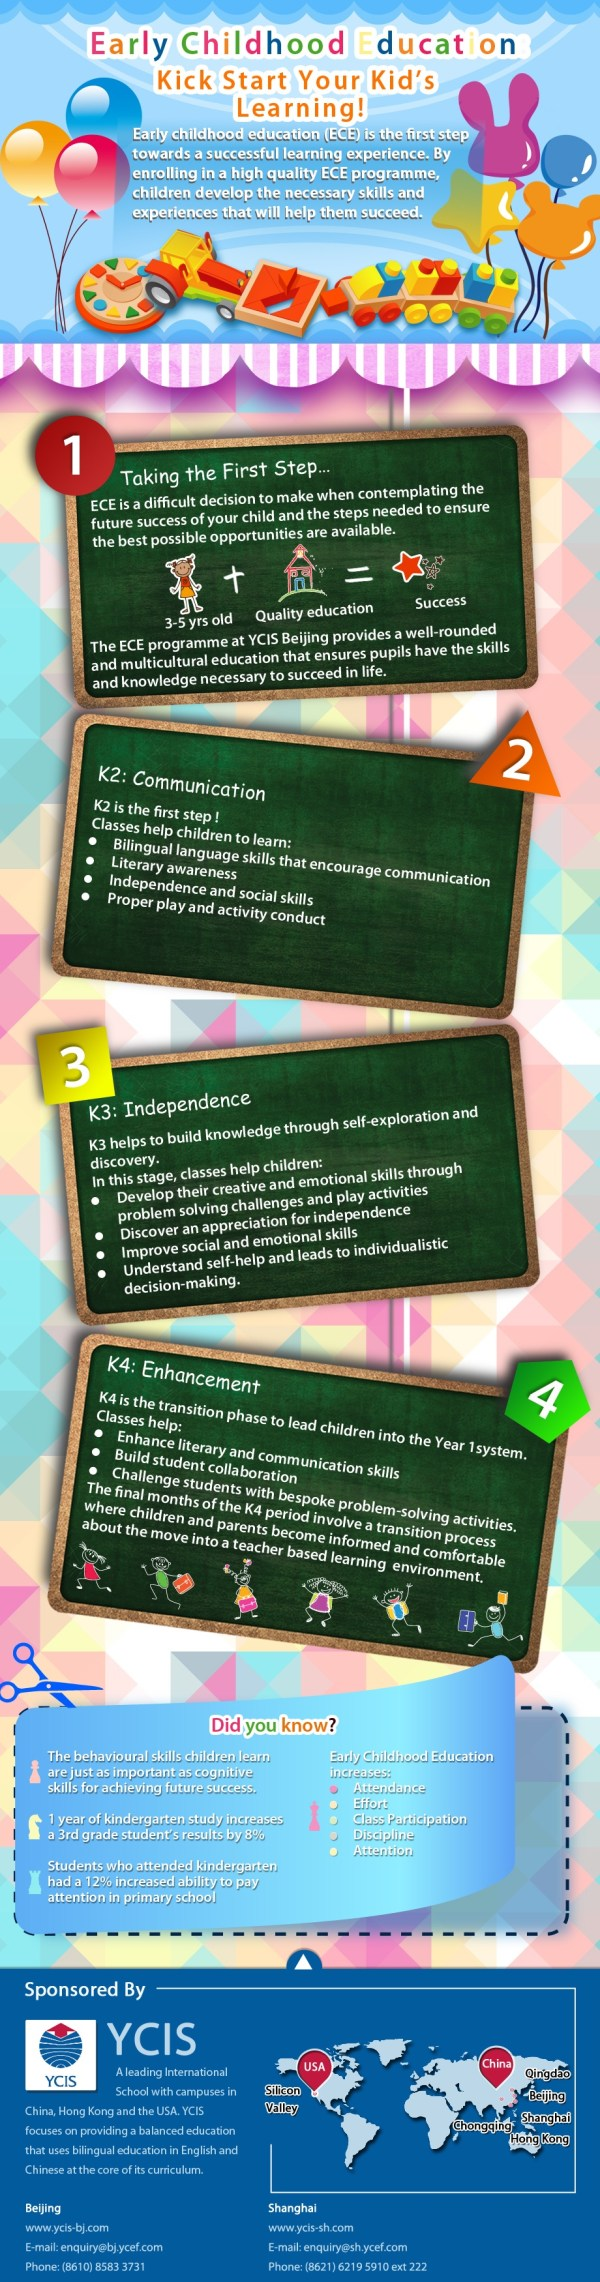 Early Childhood Education Infographic - -learning